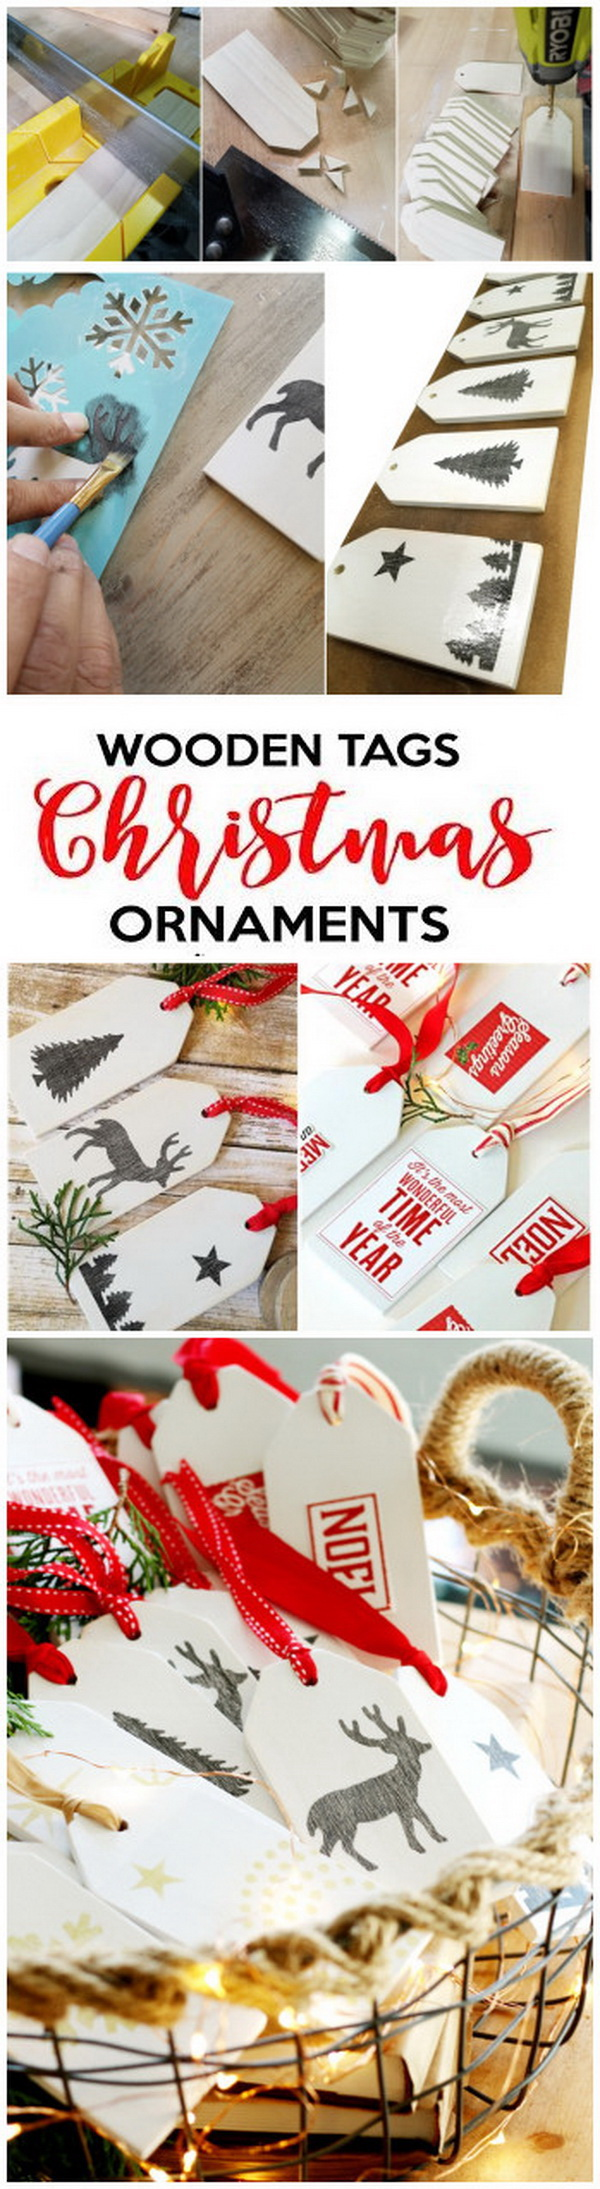 Wooden Tags Christmas Ornament. Love the simple, rustic charm of these wooden tags ornaments! They make great gifts and they'll also look good both on your tree and tied to packages.